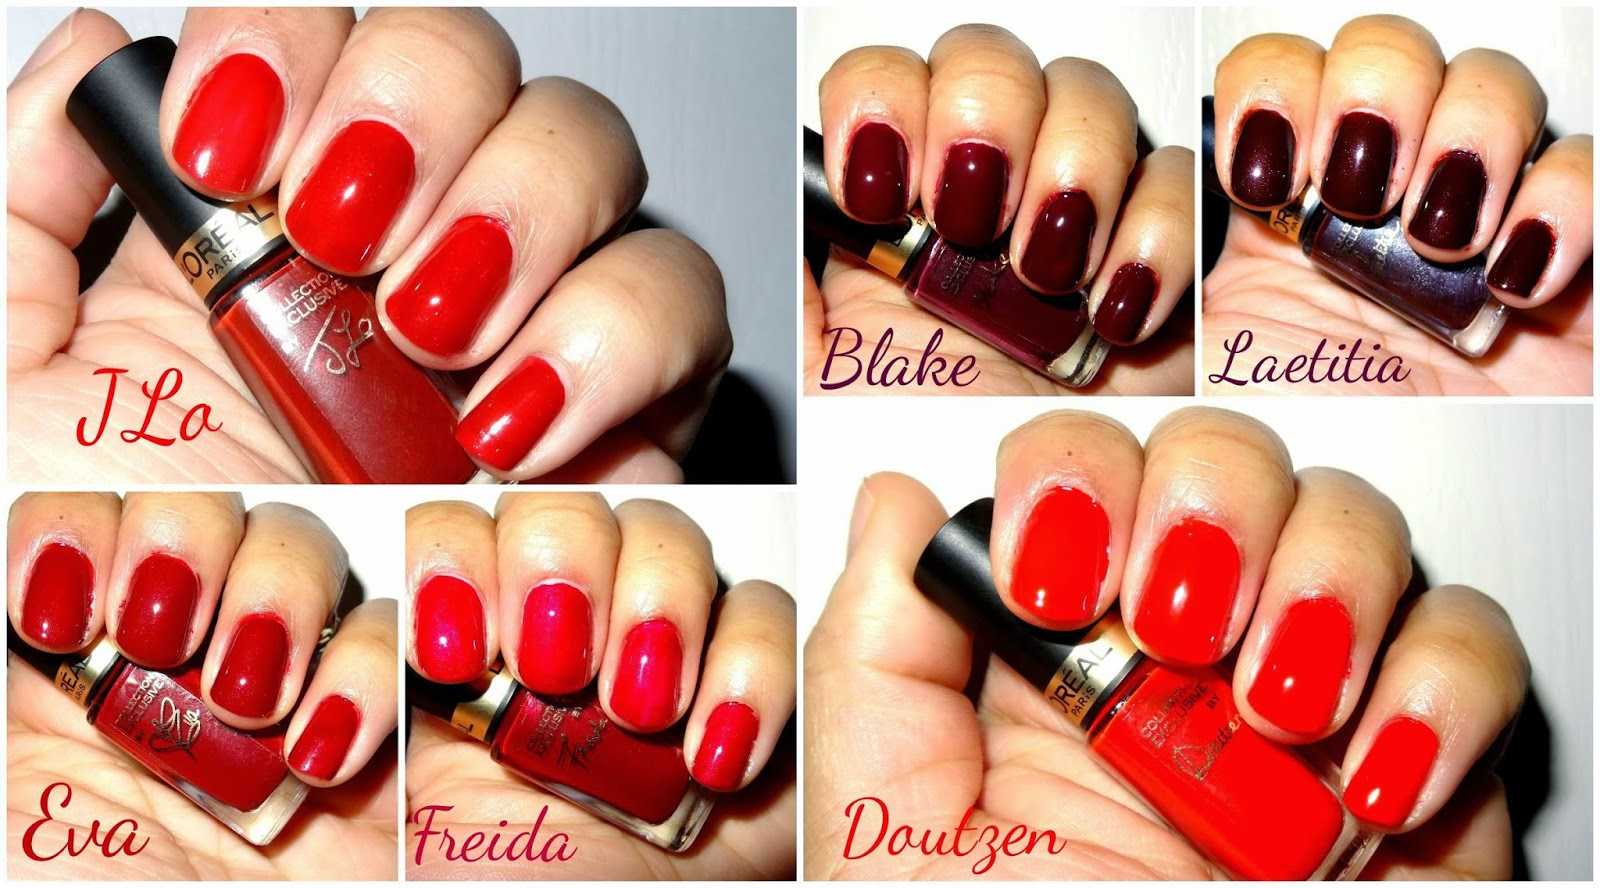 L'Oreal Pure Reds Exclusive Collection Nail Lacquers swatches